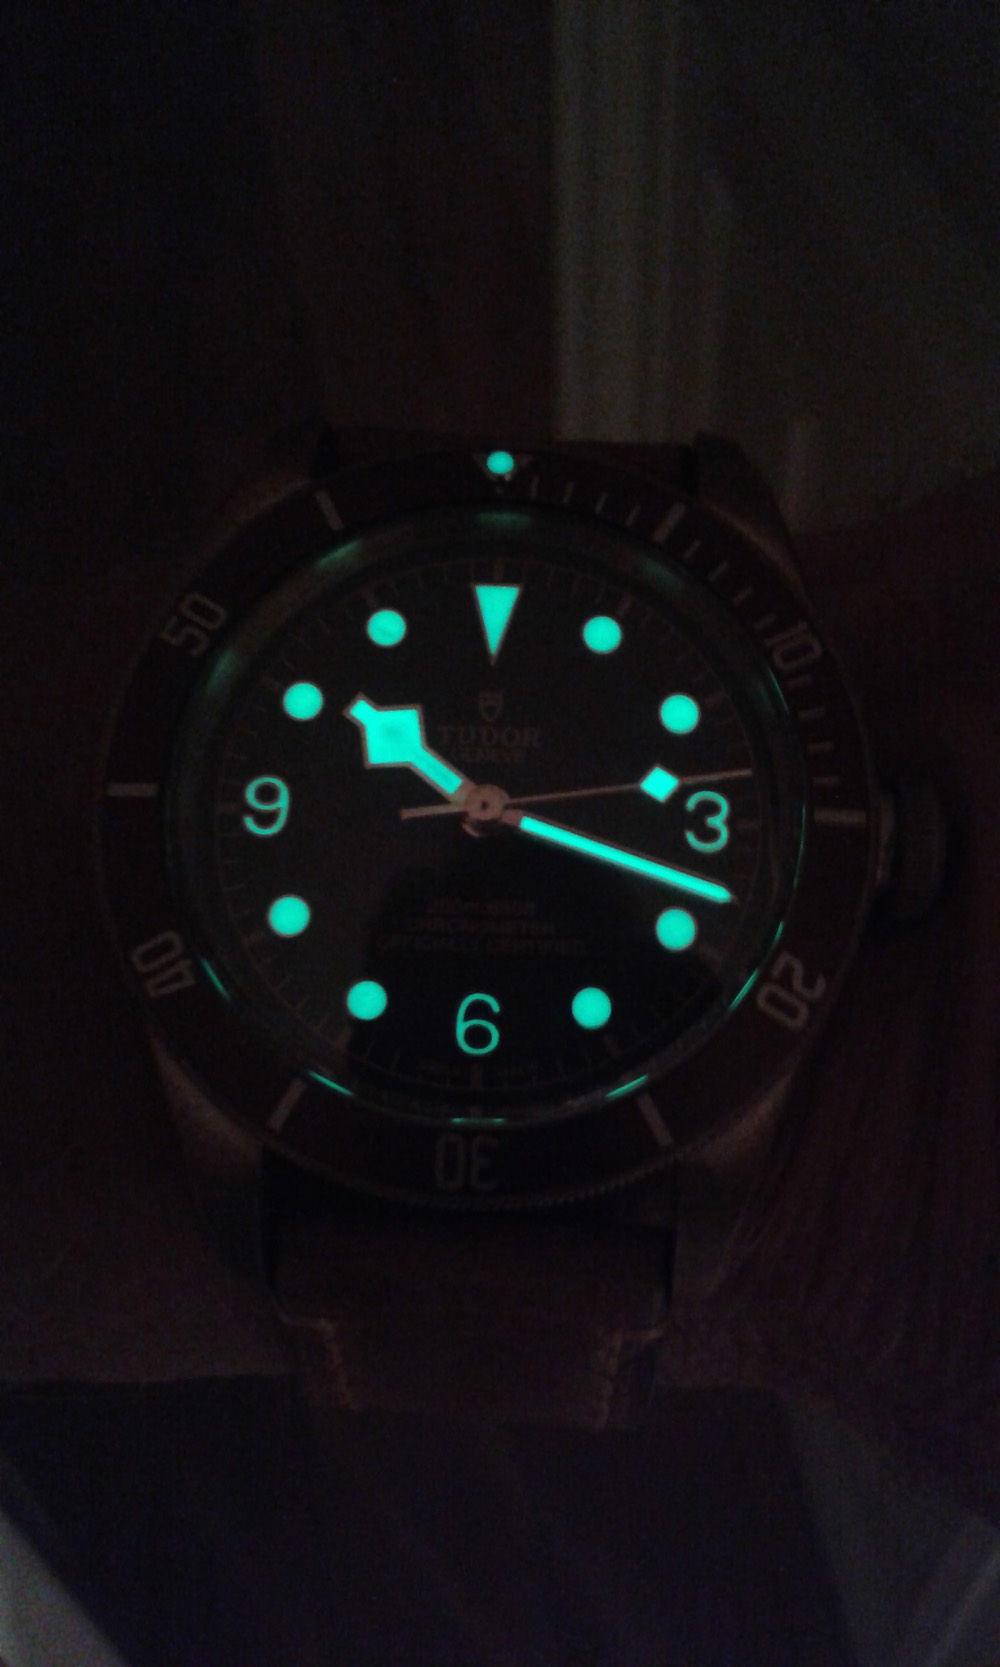 Tudor watch lume dial